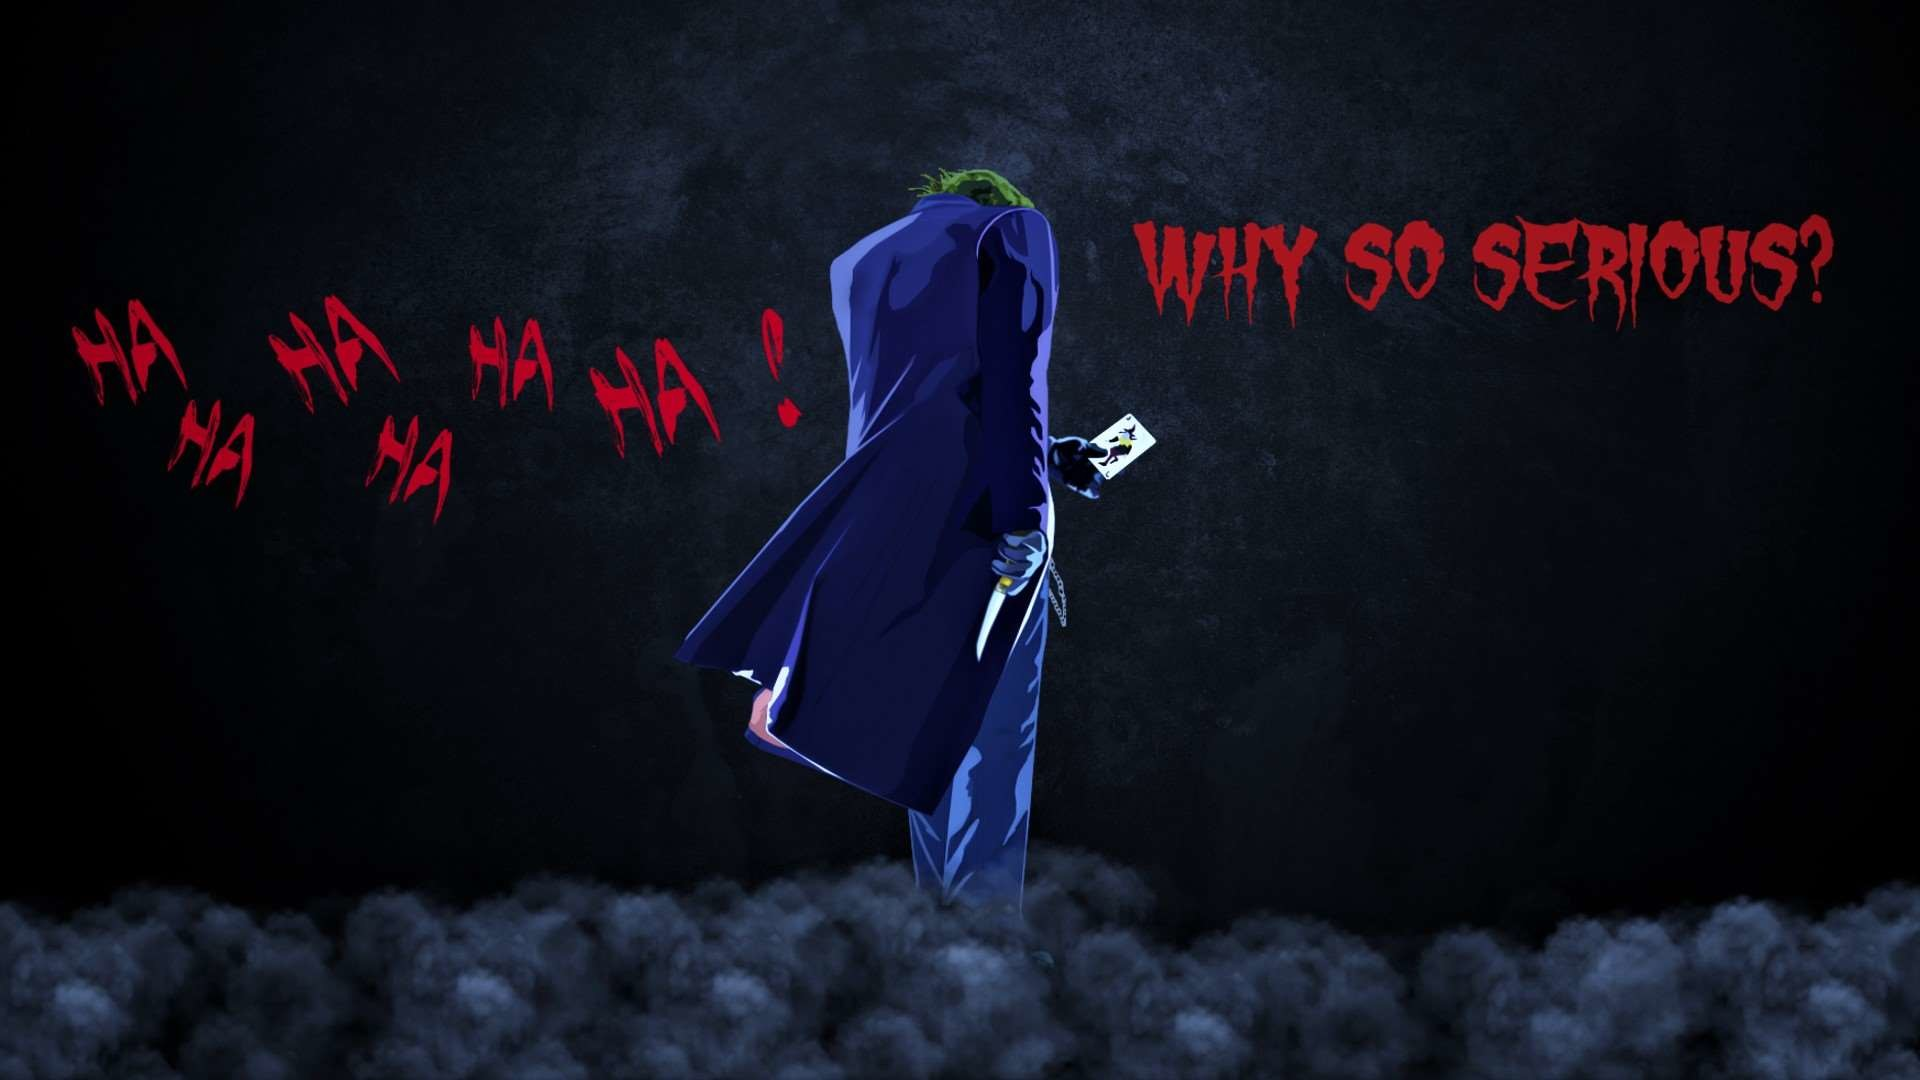 Res: 1920x1080,  batman, comics, creepy, dark, dc, gotham, hd, joker, riddler,  scary, superhero, superman, the joker wallpaper and background JPG 87 kB